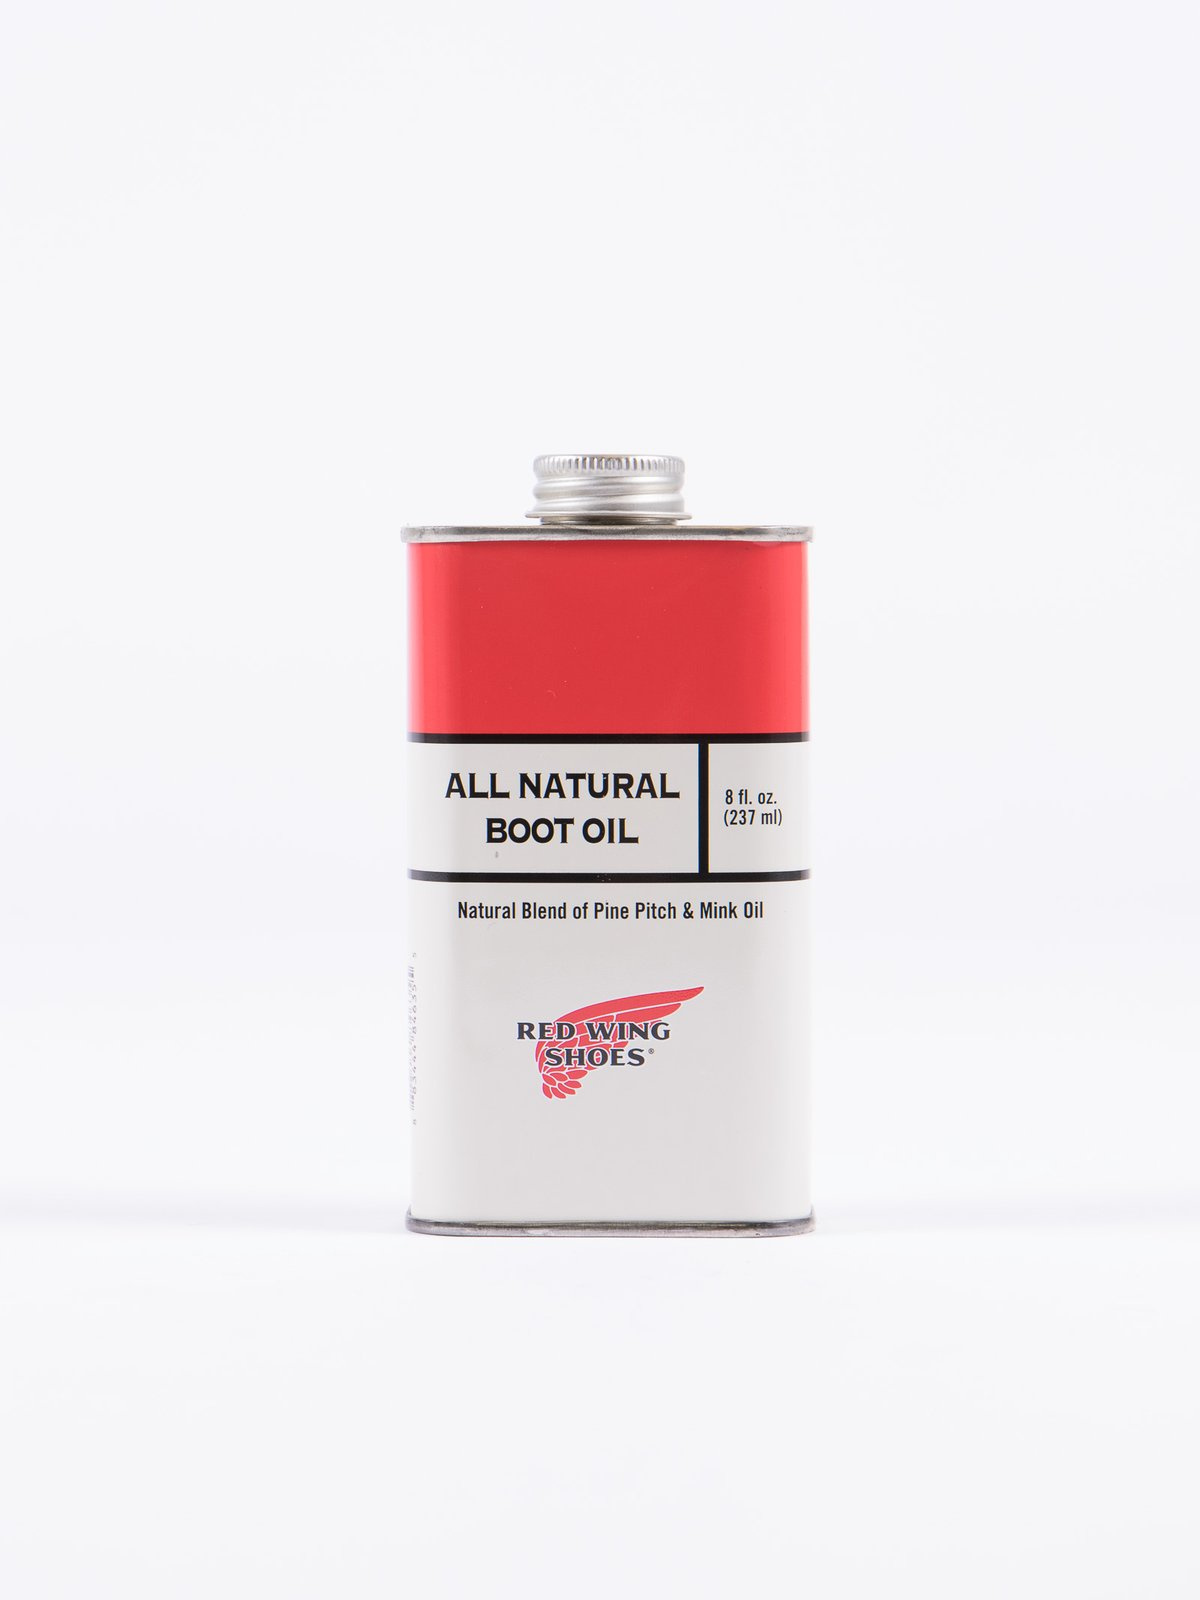 All Natural Boot Oil - Image 1